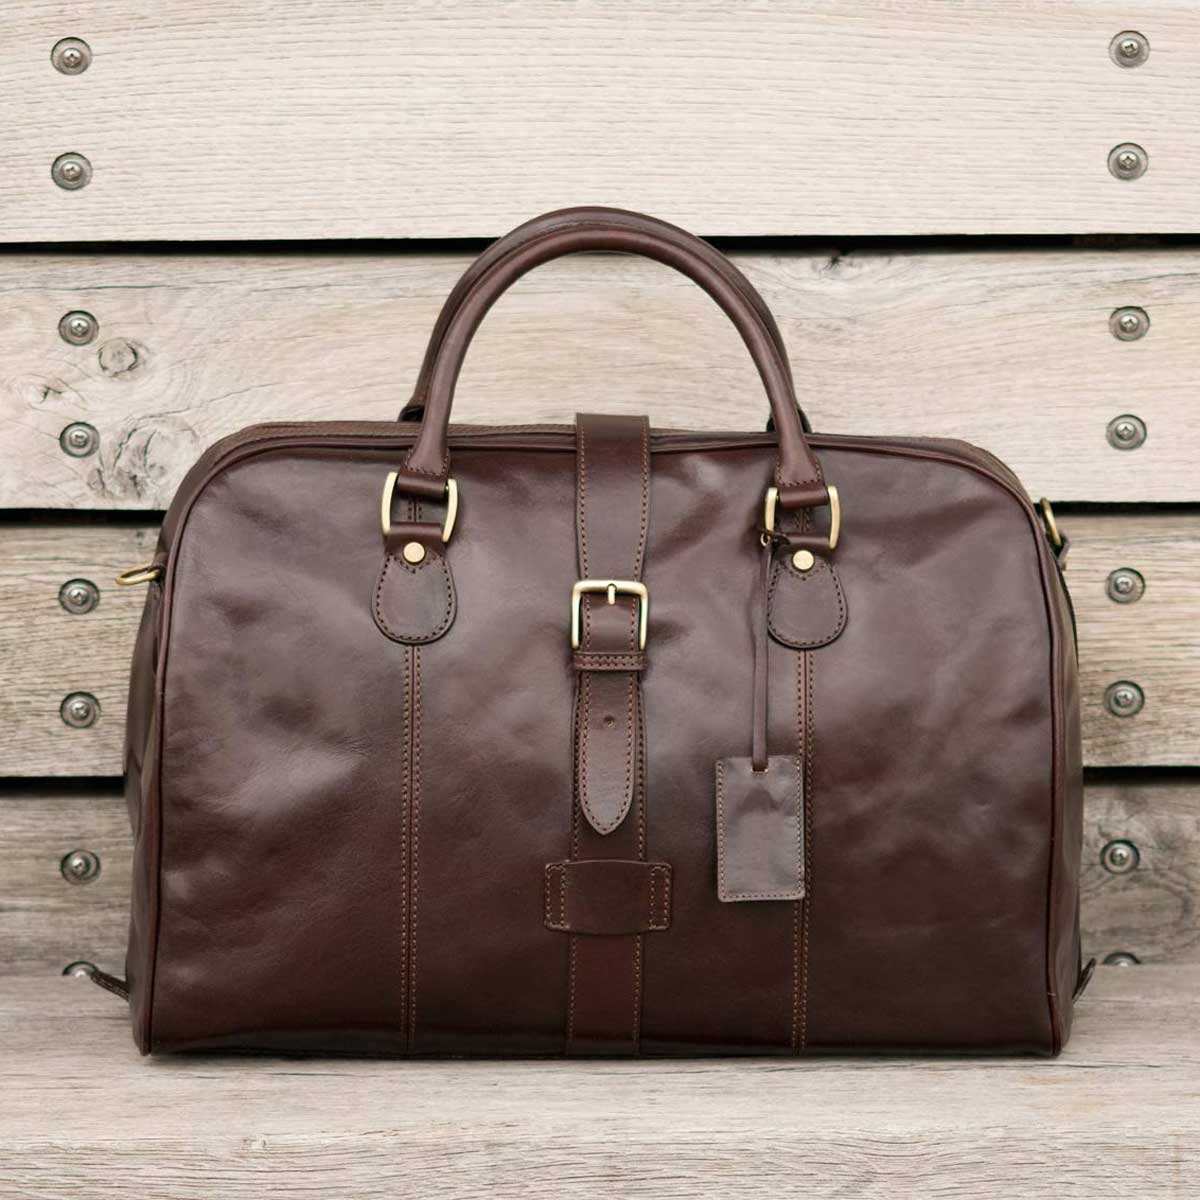 Image 9 of the 'Farini' Black Veg-Tanned Leather Luxury Hand Luggage